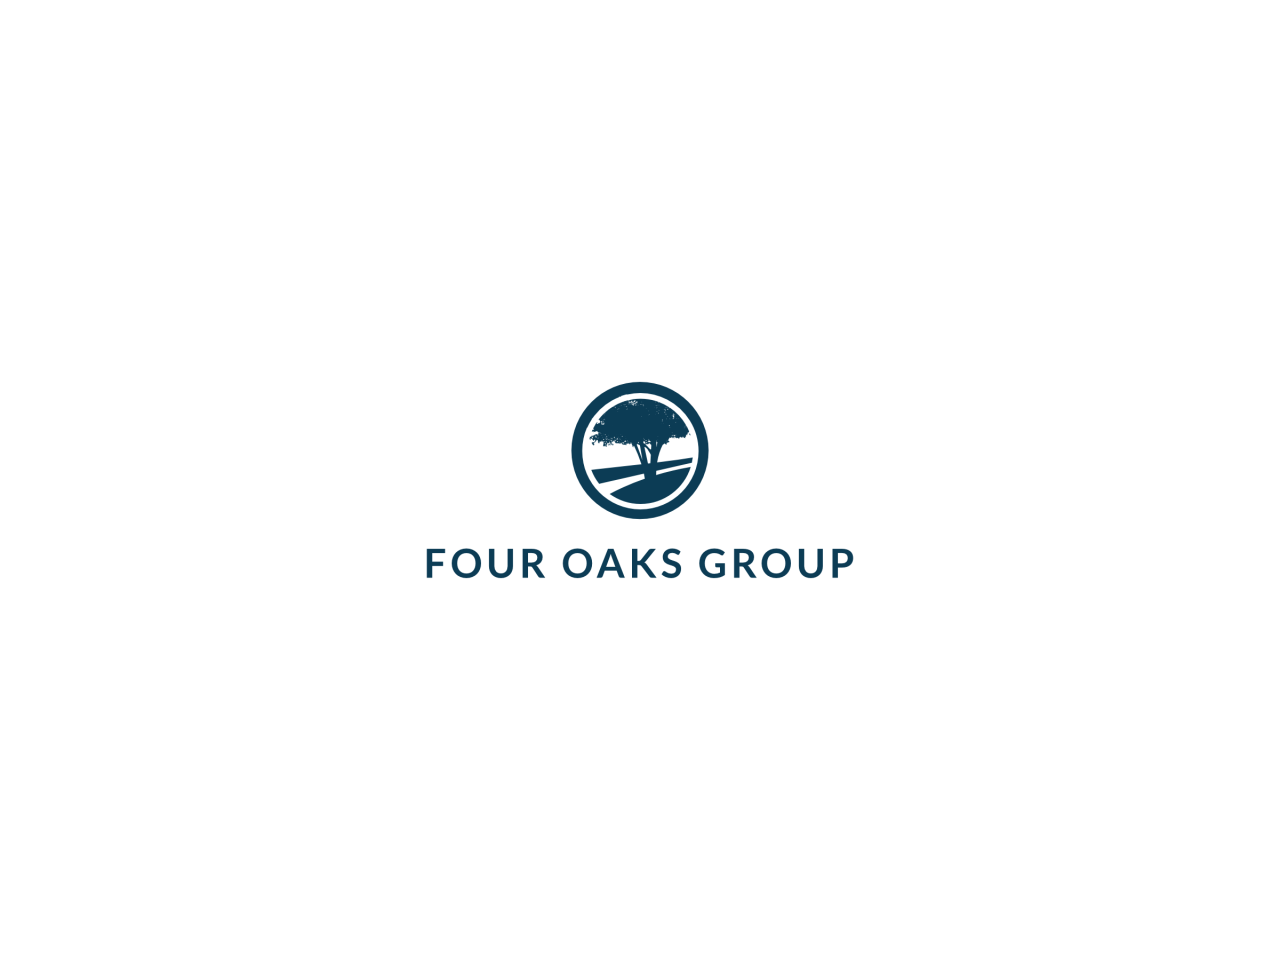 Four Oaks Group Brand B